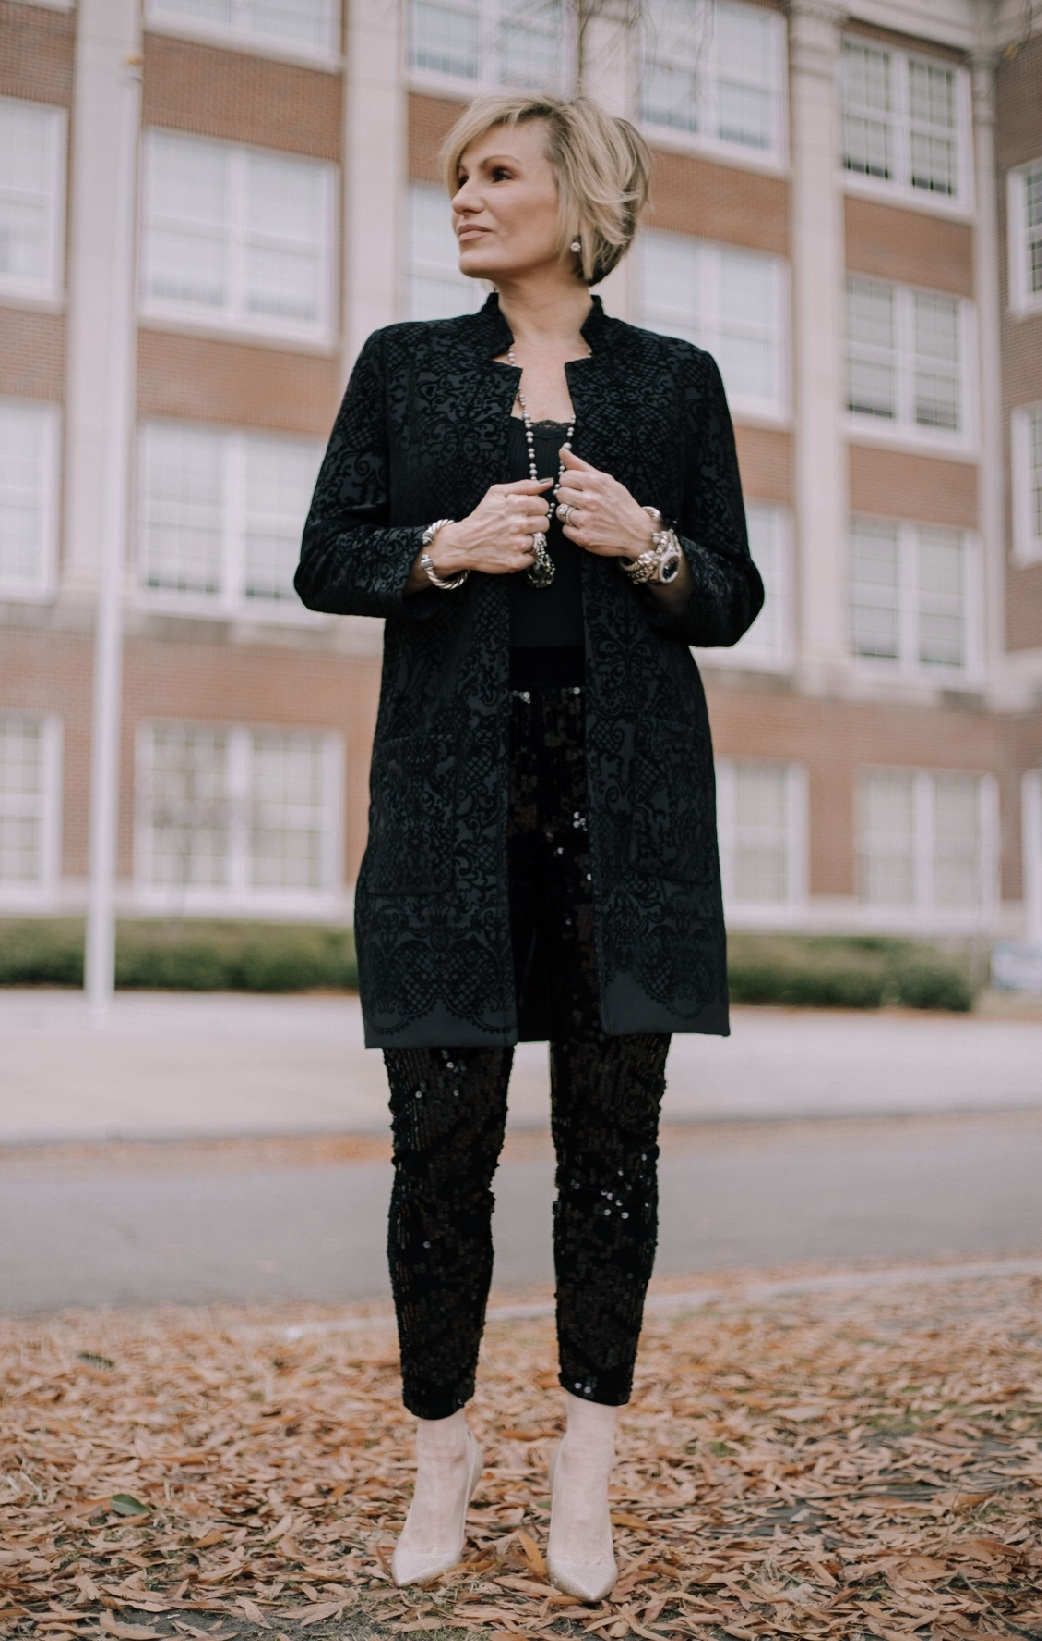 Styled with a damask jacket - perfect for office party or after work cocktails. Shop this look  here .